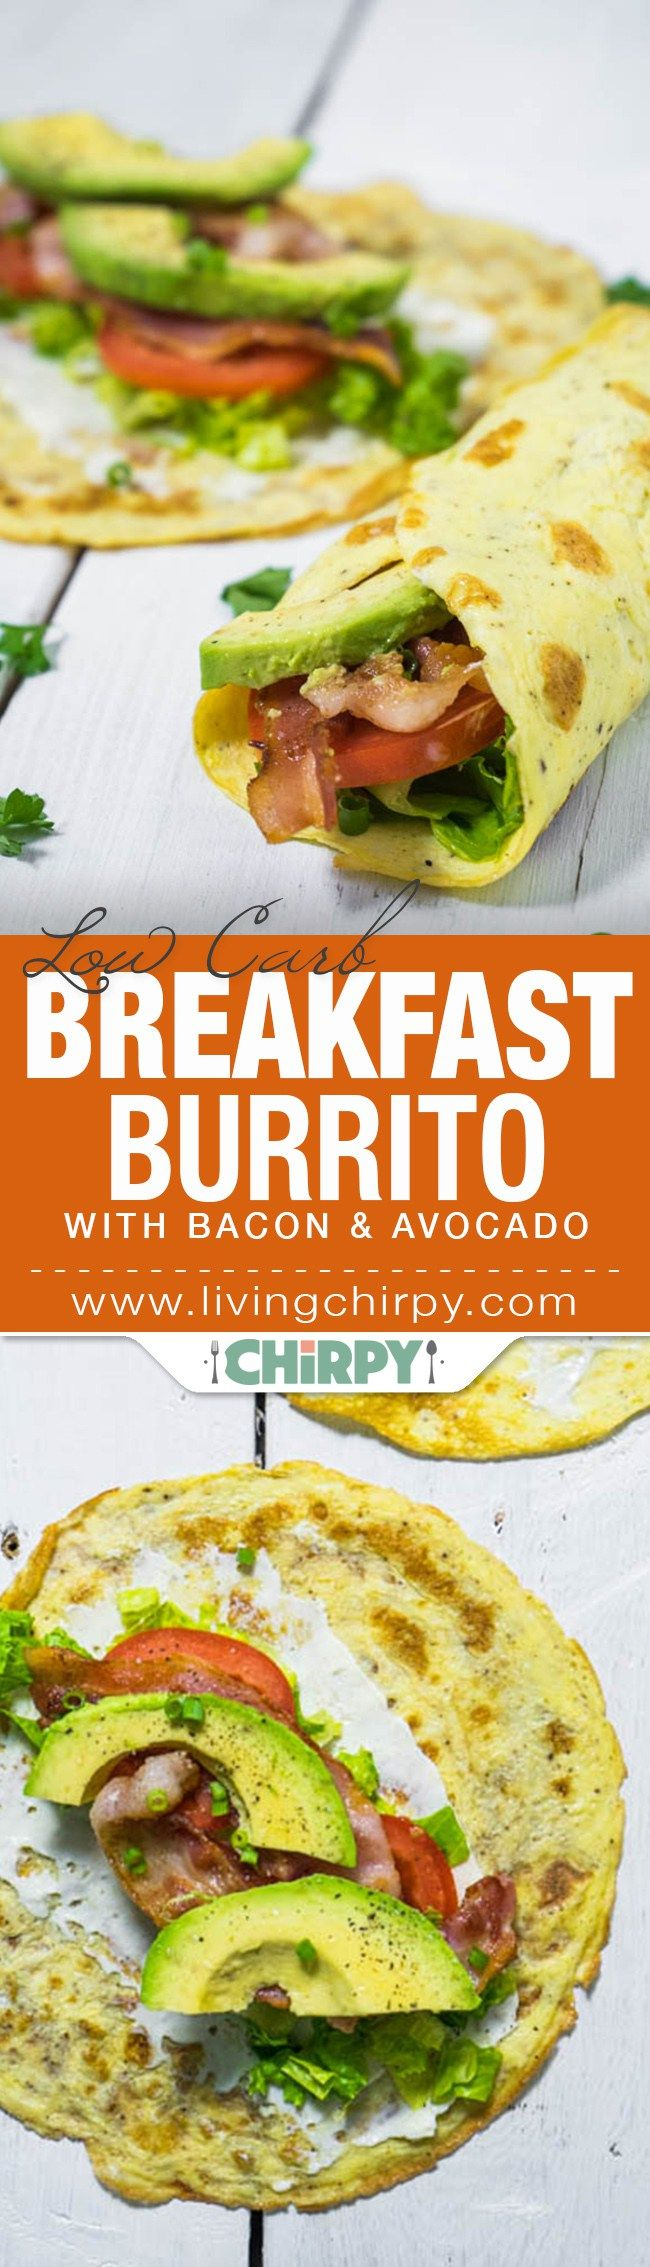 low carb breakfast burrito with bacon and avocado